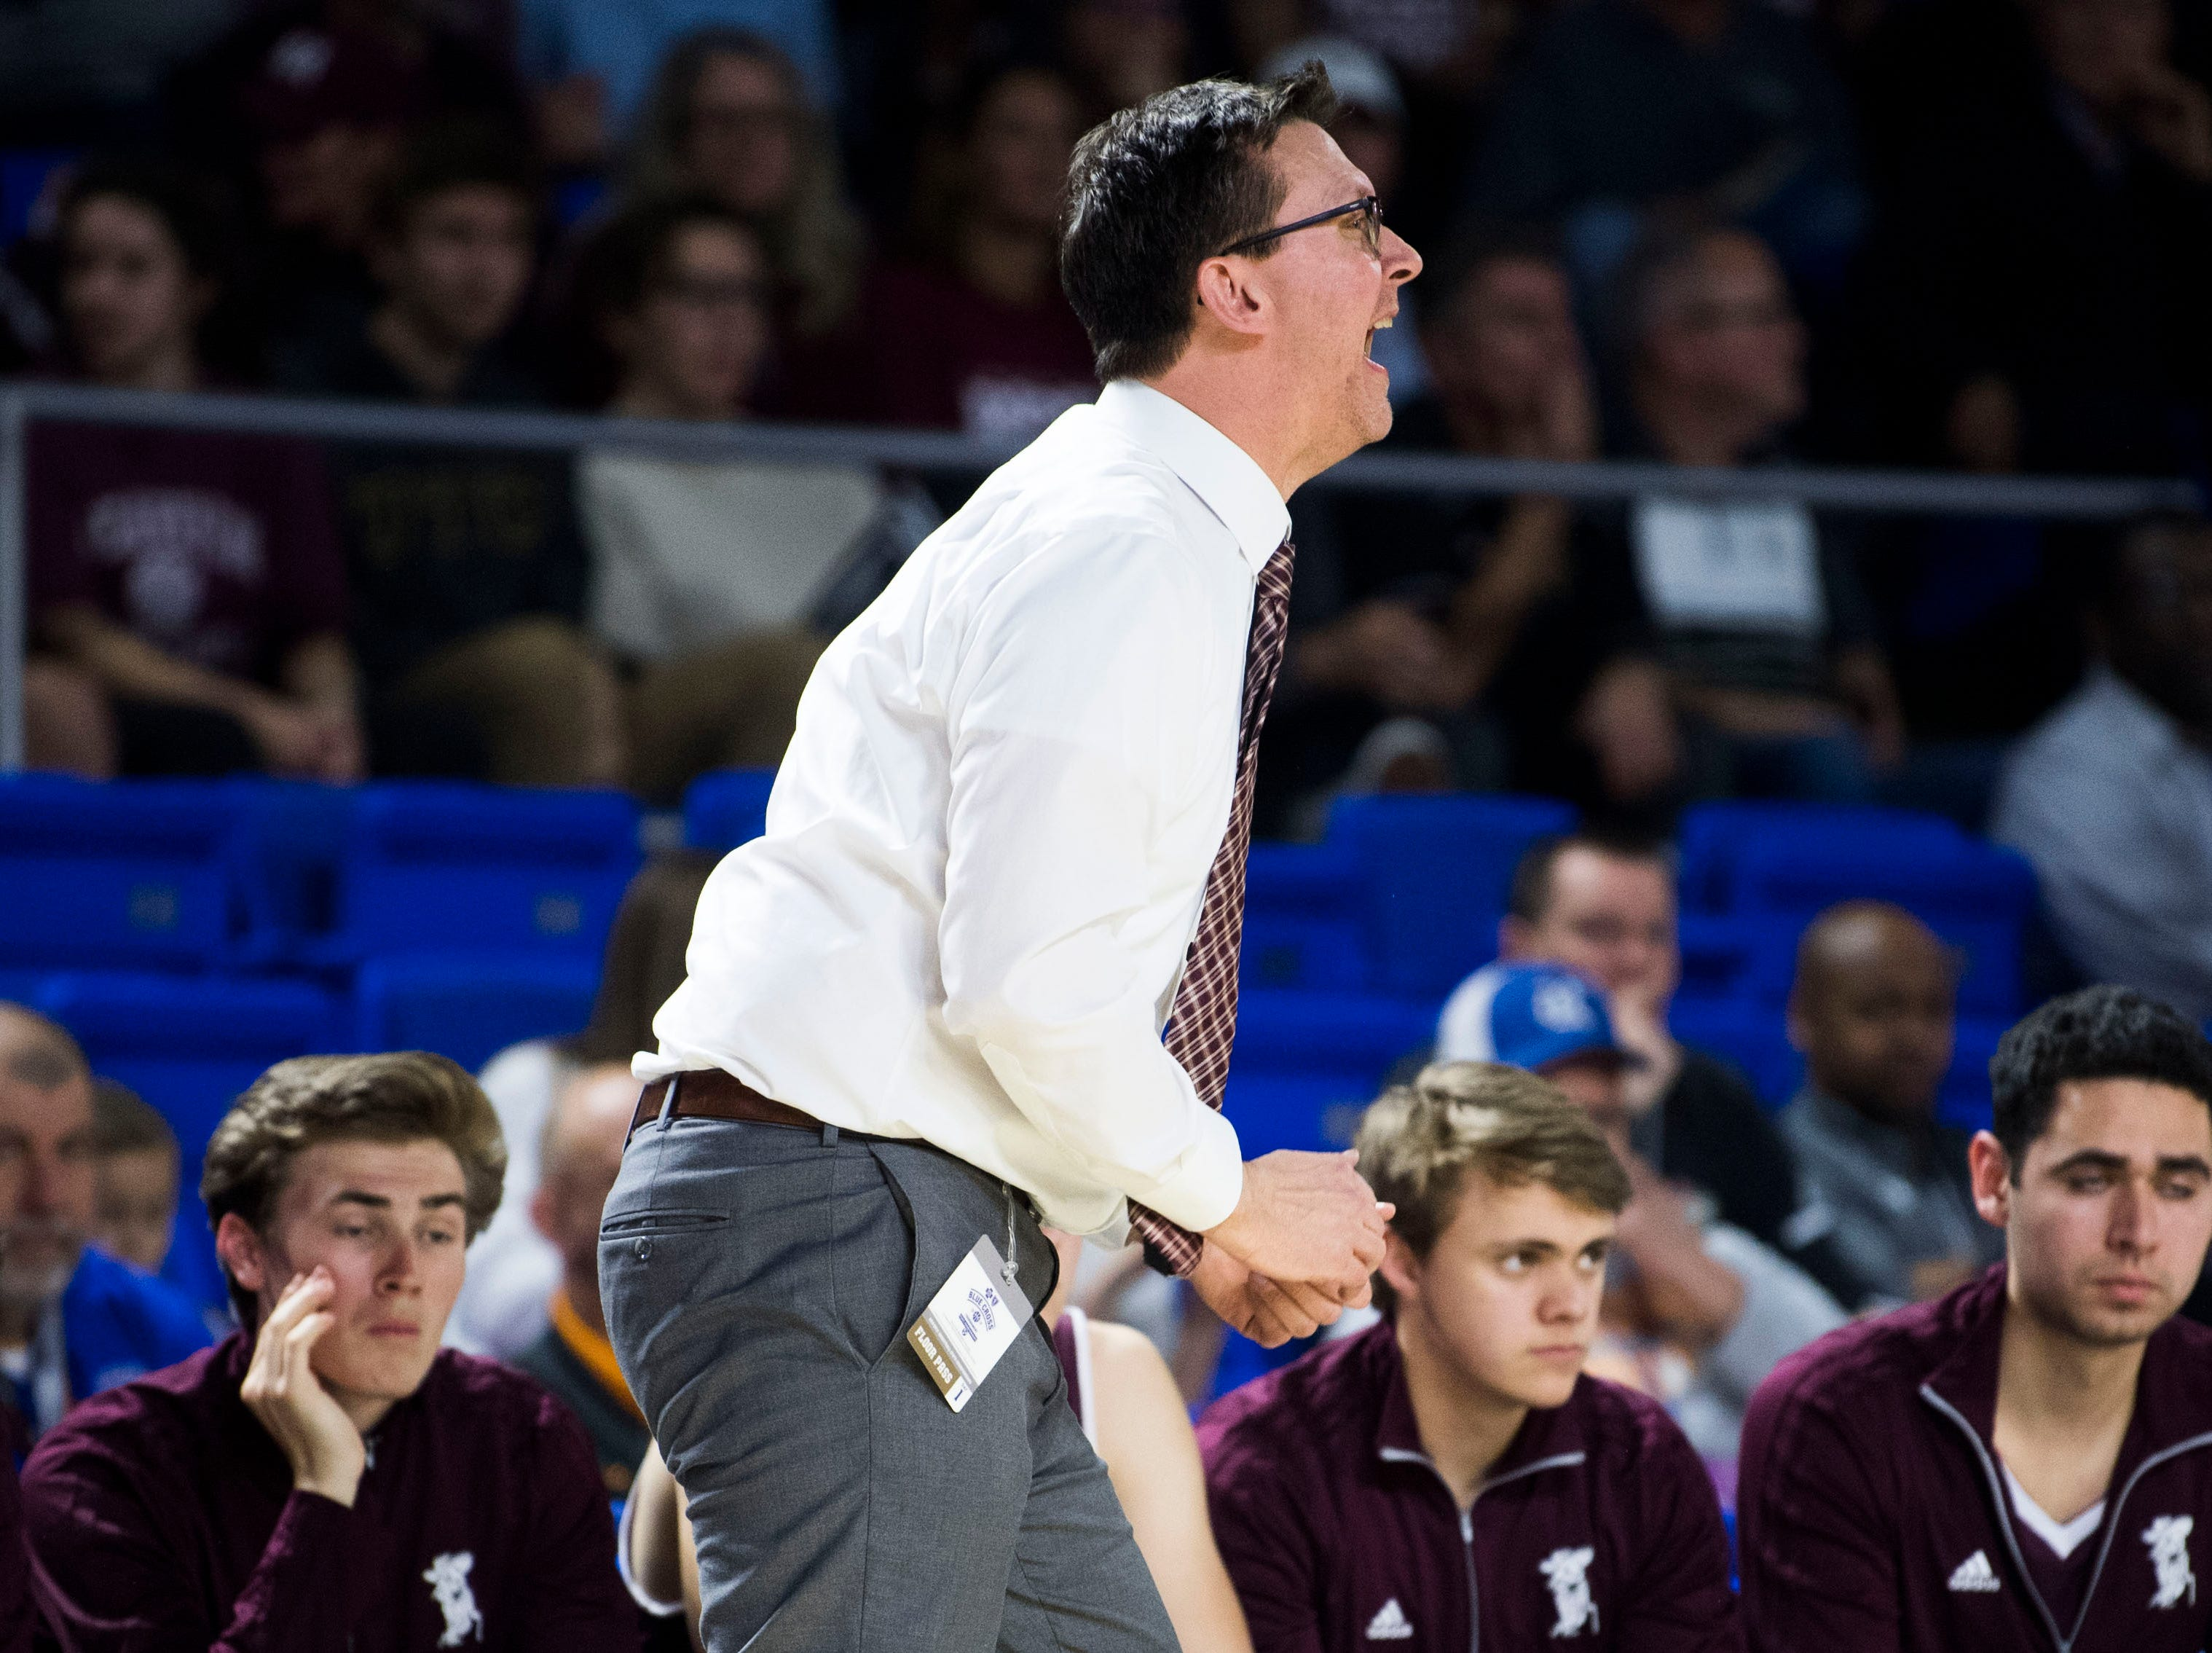 Franklin's head coach Darrin Joines yells to players on the court during a TSSAA AAA state quarterfinal game between Bearden and Franklin at the Murphy Center in Murfreesboro, Wednesday, March 13, 2019.